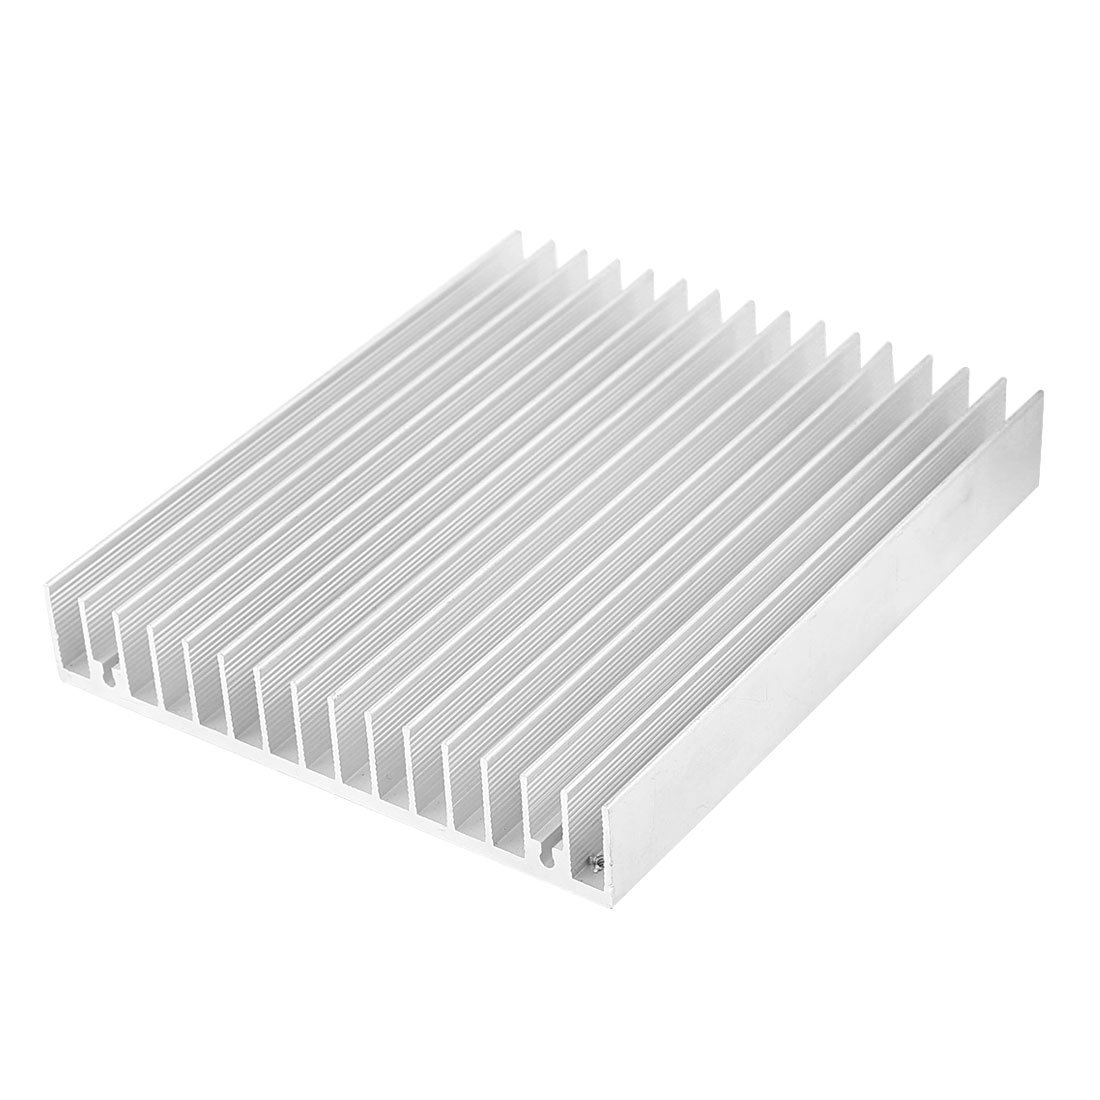 Uxcell a14041100ux0543 Aluminum Heat Diffuse Heat Sink Cooling Fin 120x100x18mm Silver Tone